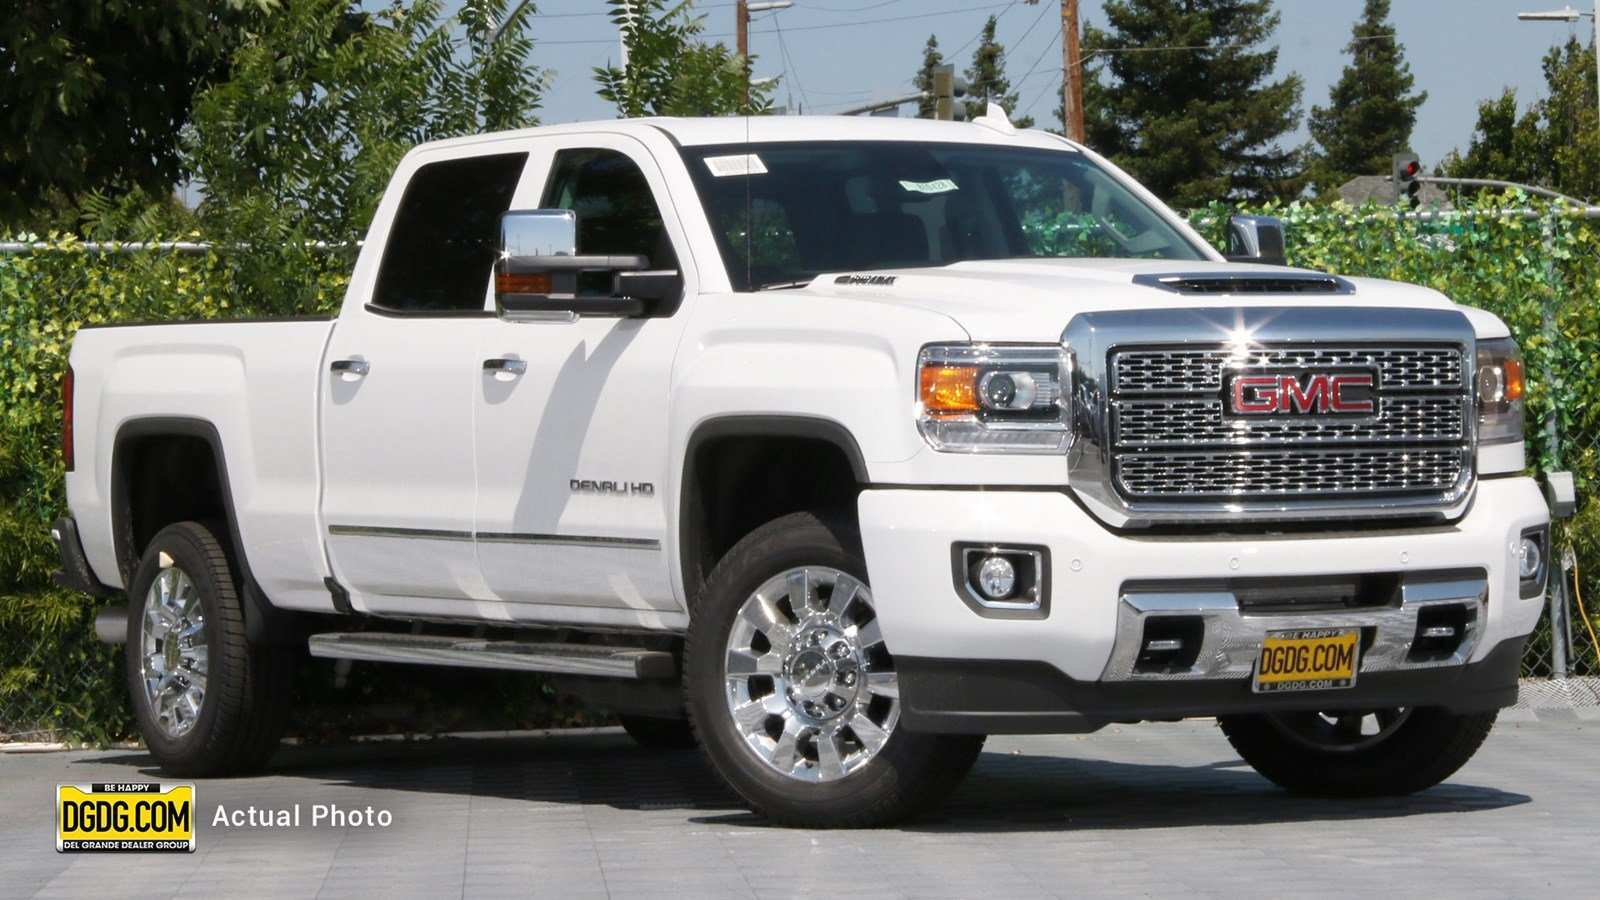 96 The Best 2019 Gmc 2500 Sierra Denali Price And Review